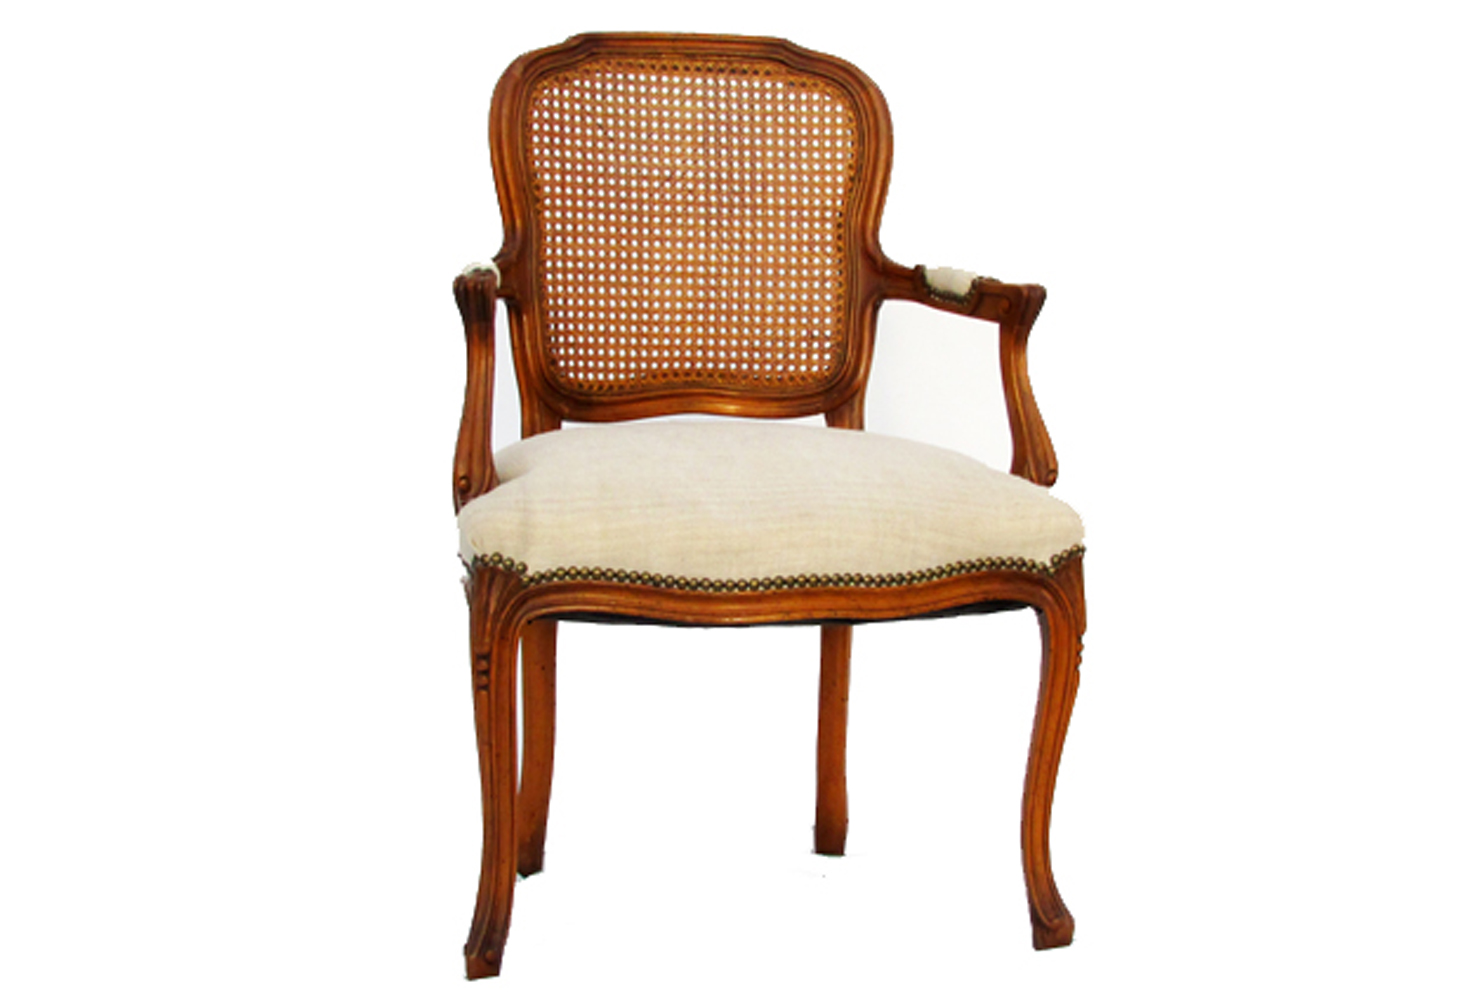 Antique French Cane Back Arm Chair Omero Home